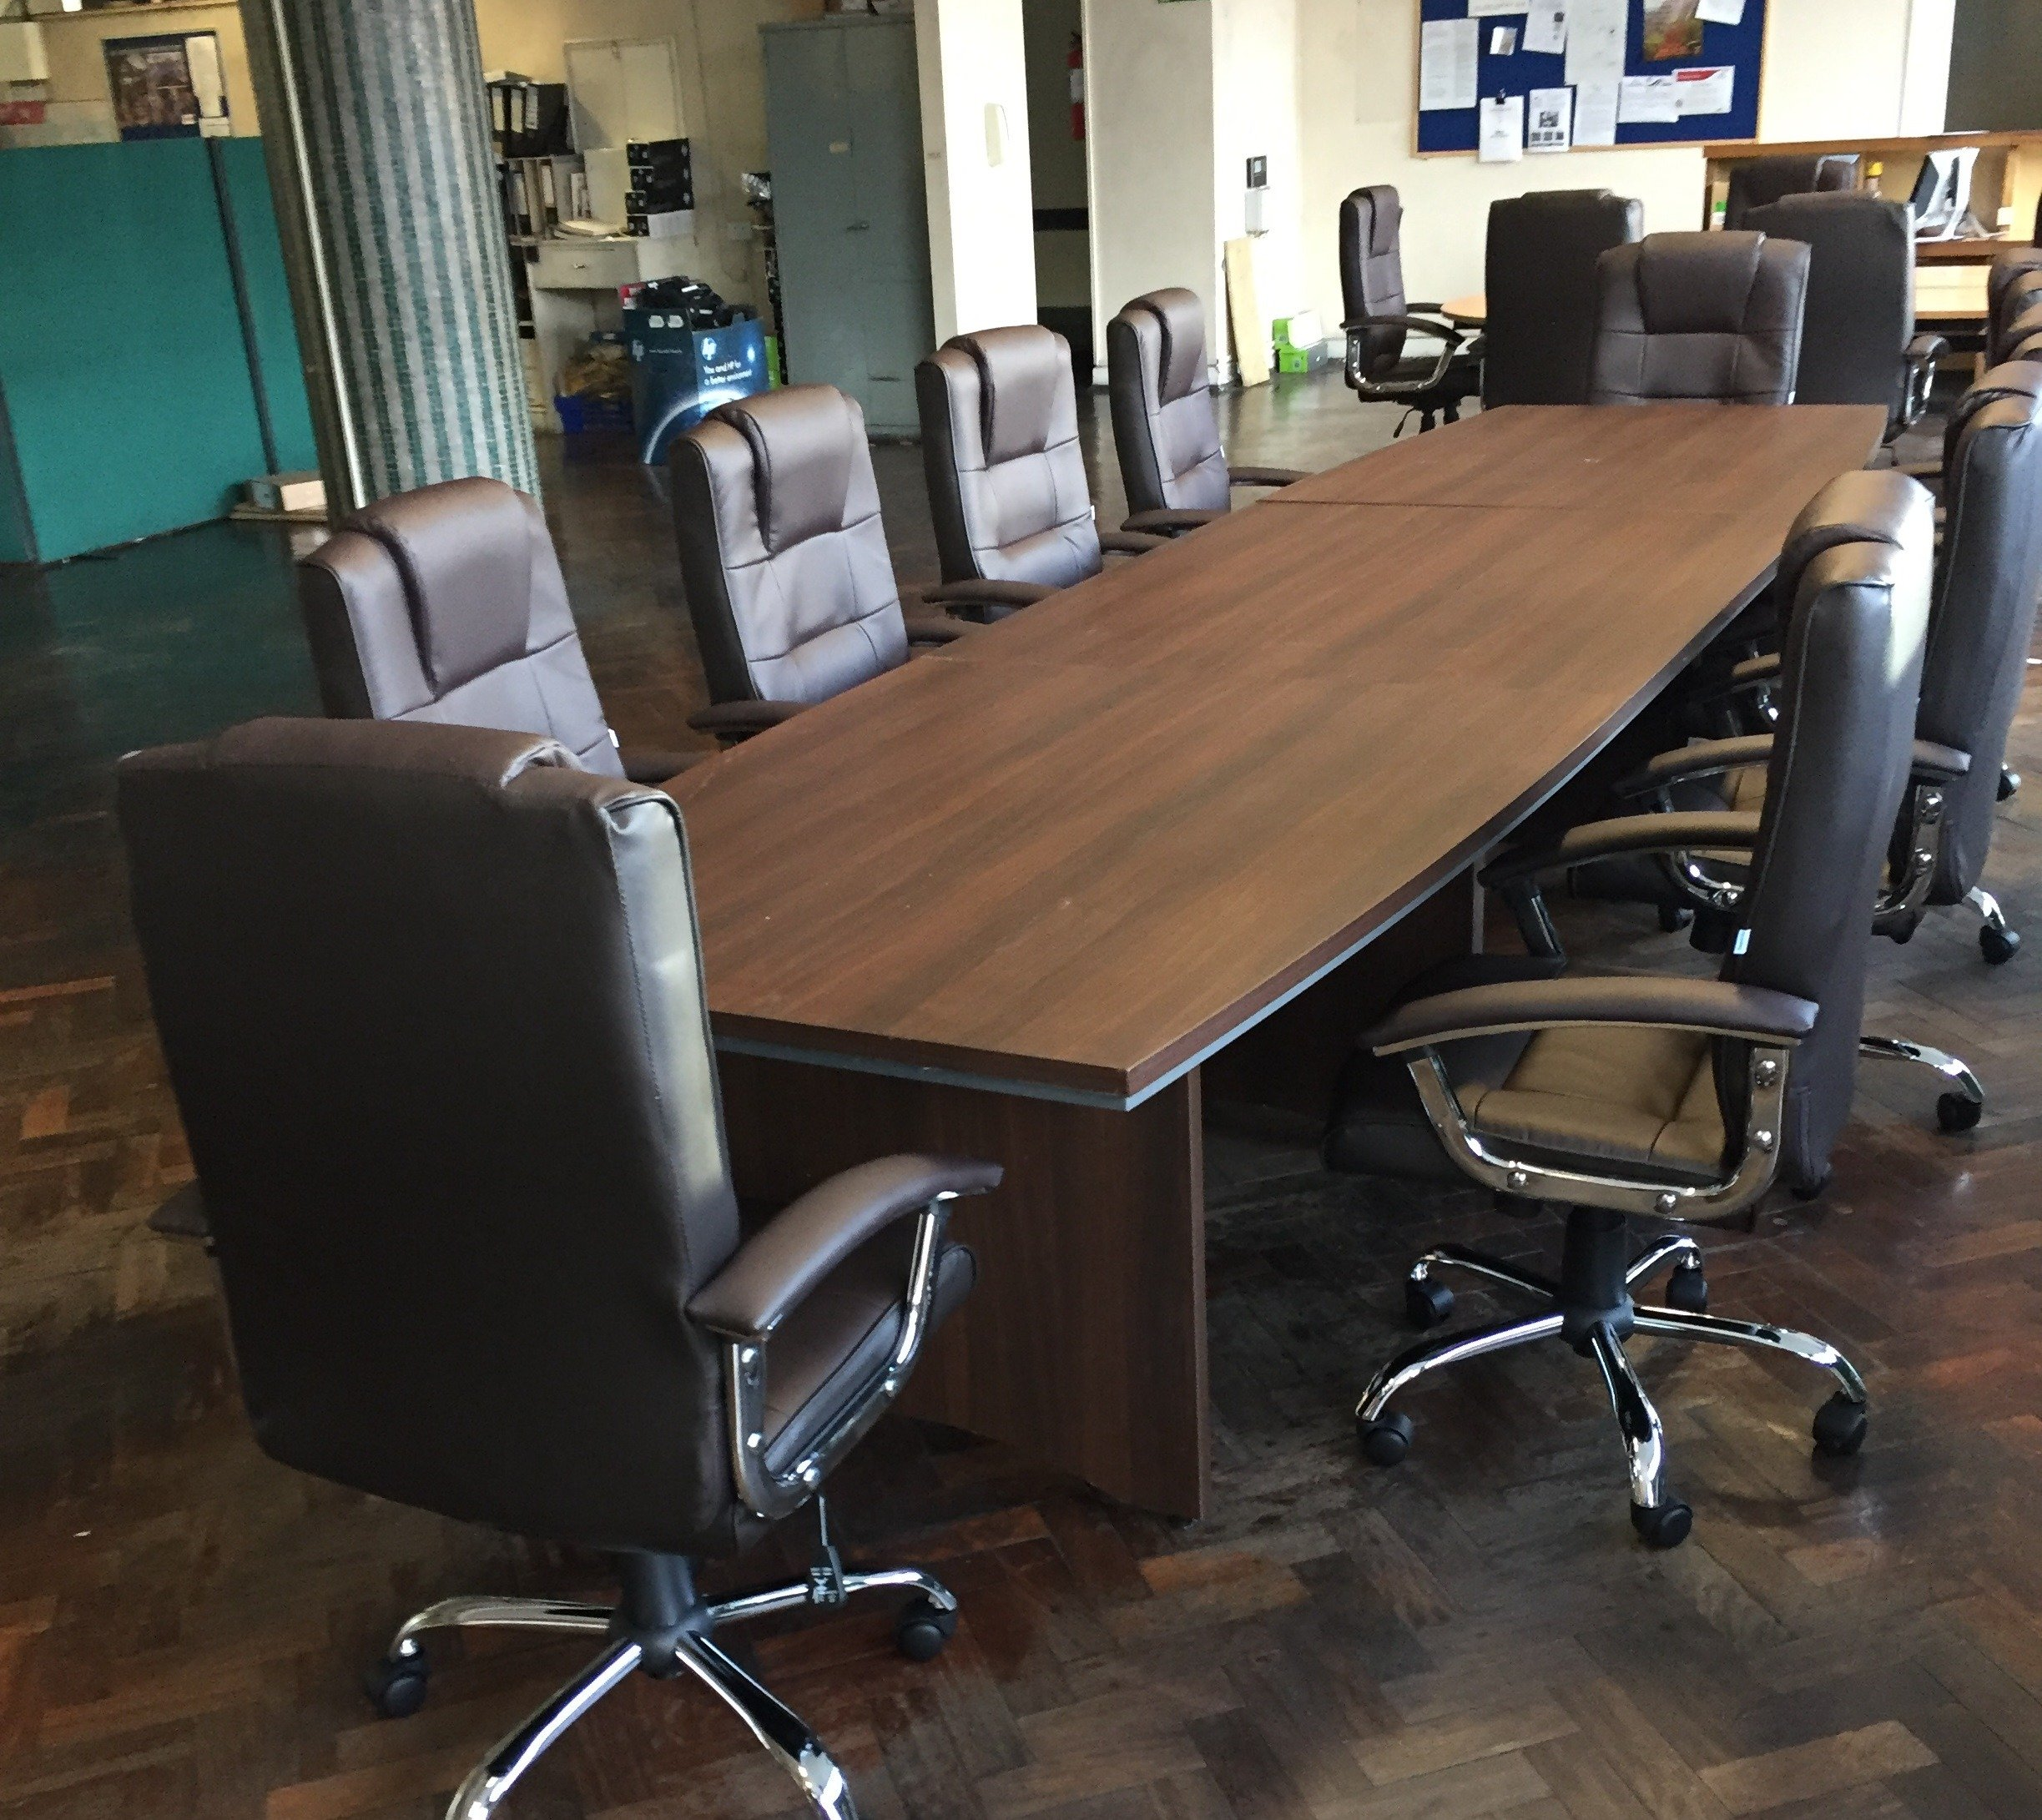 Boardroom Furniture For Sale: Opus Executive Boardroom Table